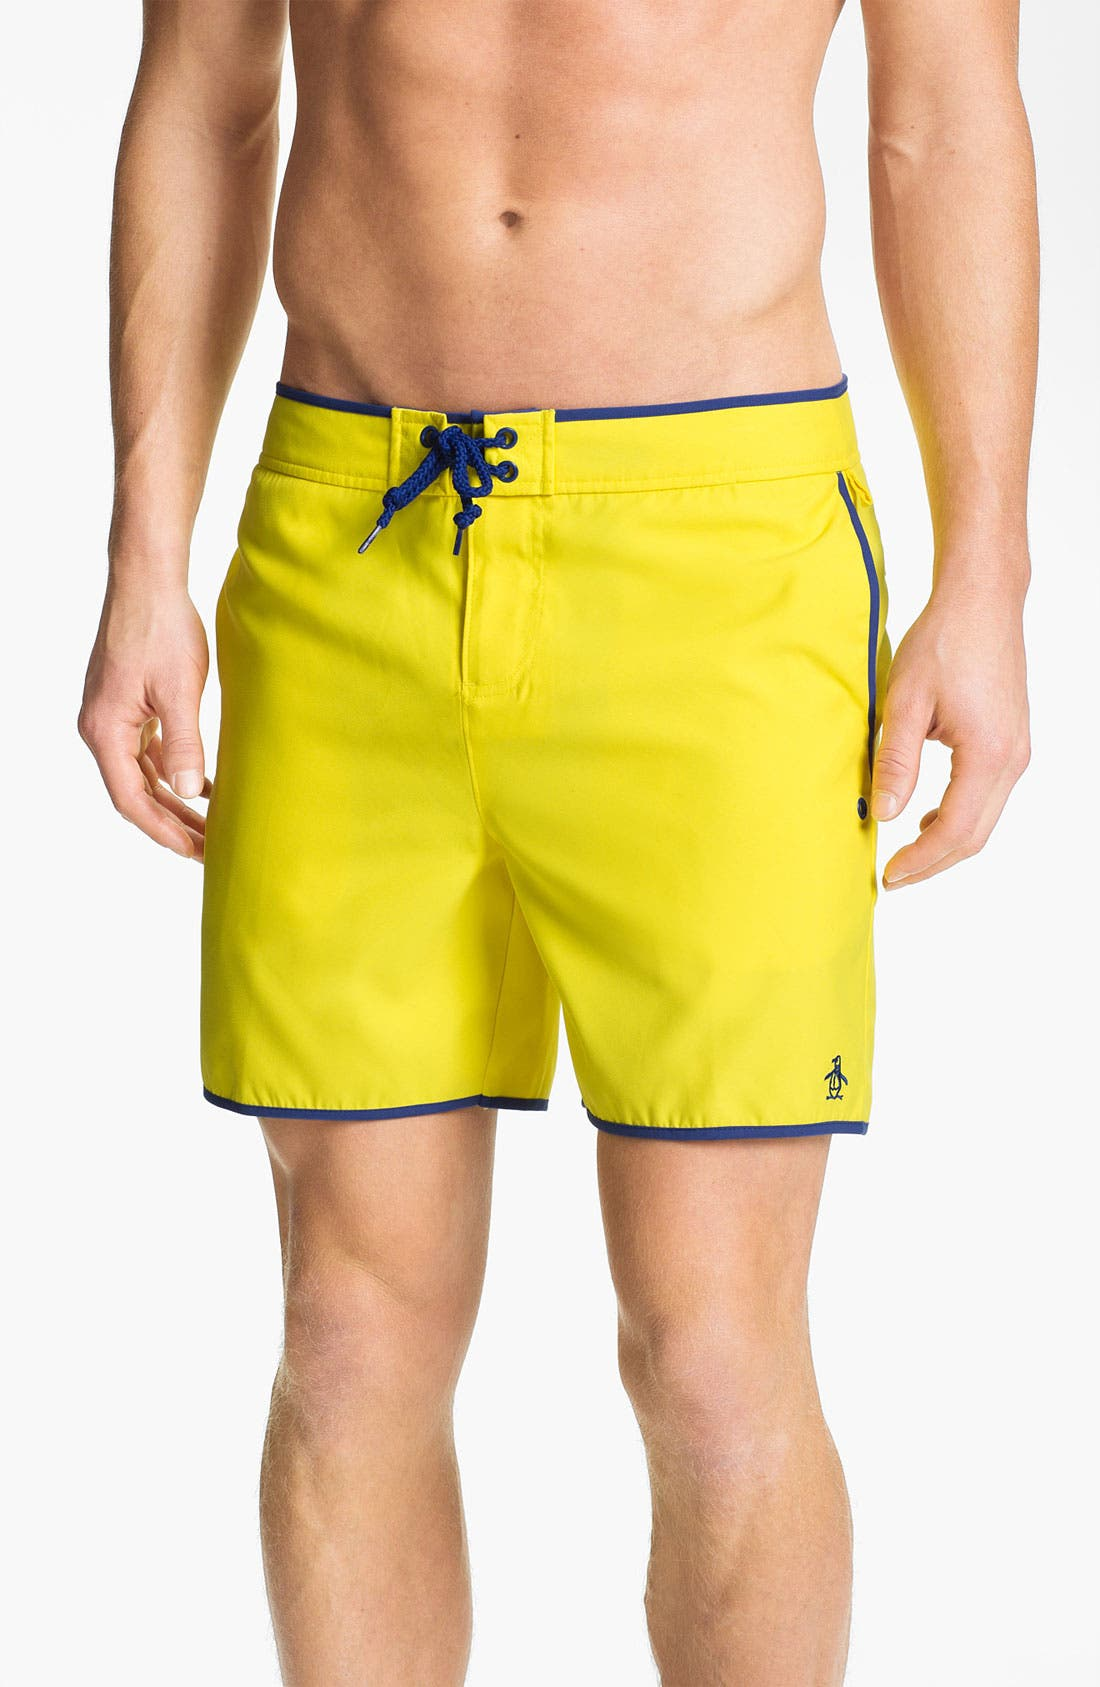 Main Image - Original Penguin Swim Shorts